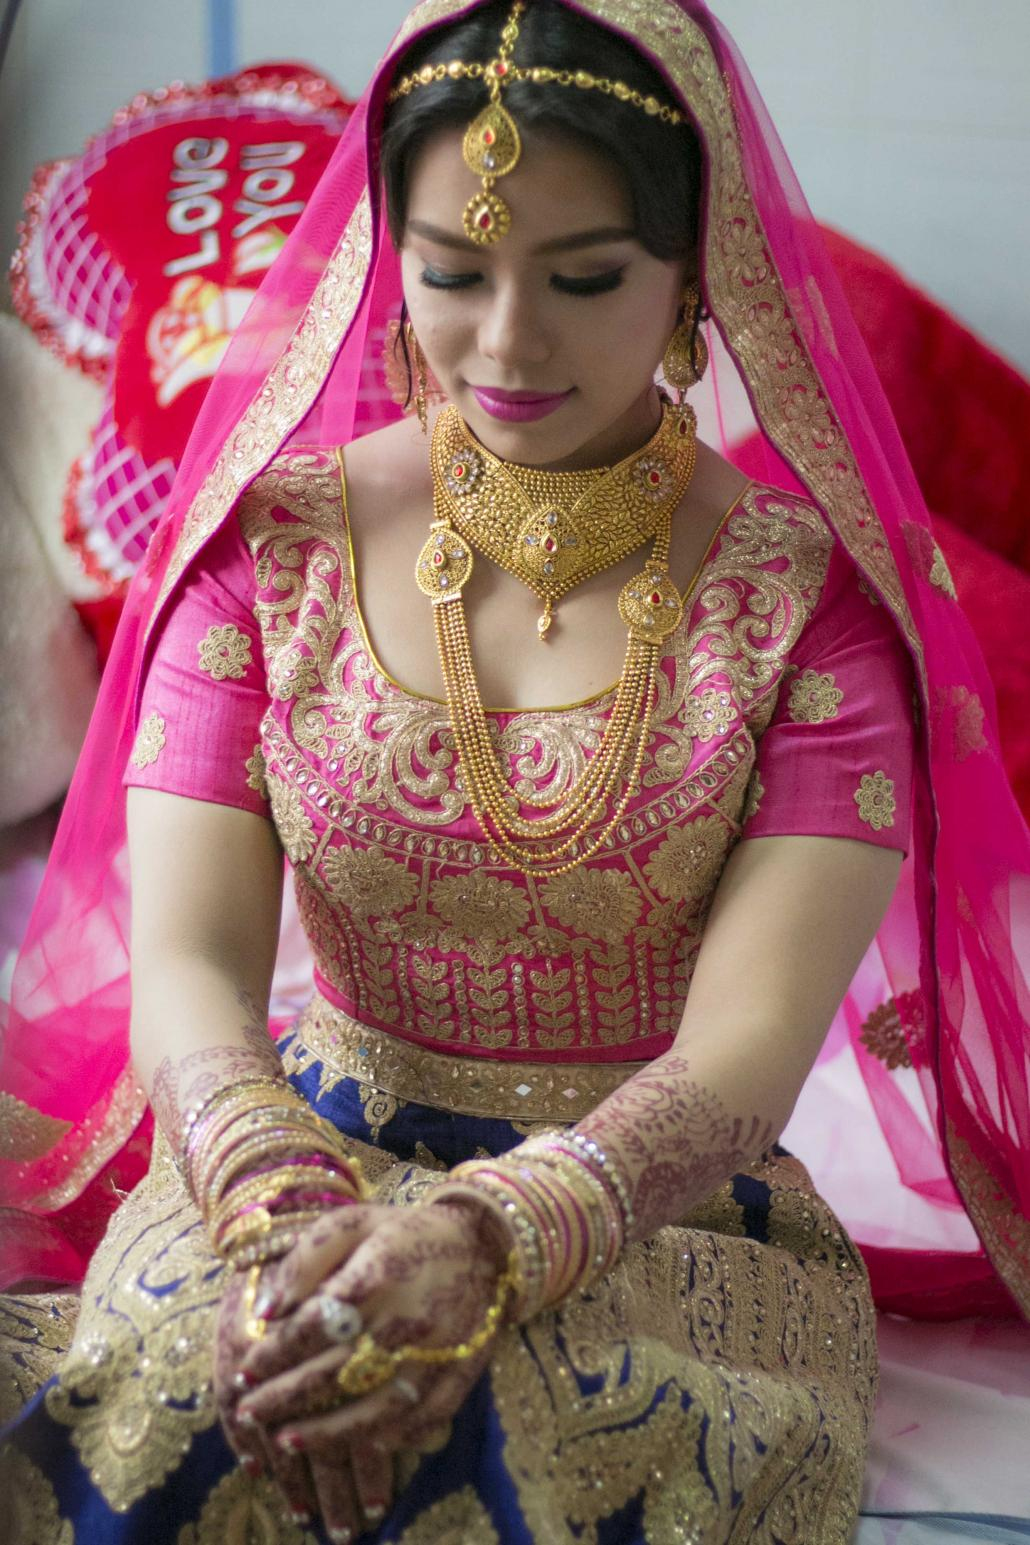 Bride Shilpa Pradhan, 23, is Gorkha-Buddhist but agreed to a Hindu-style wedding at the request of her husband's family. (Nyein Su Wai Kyaw Soe | Frontier)